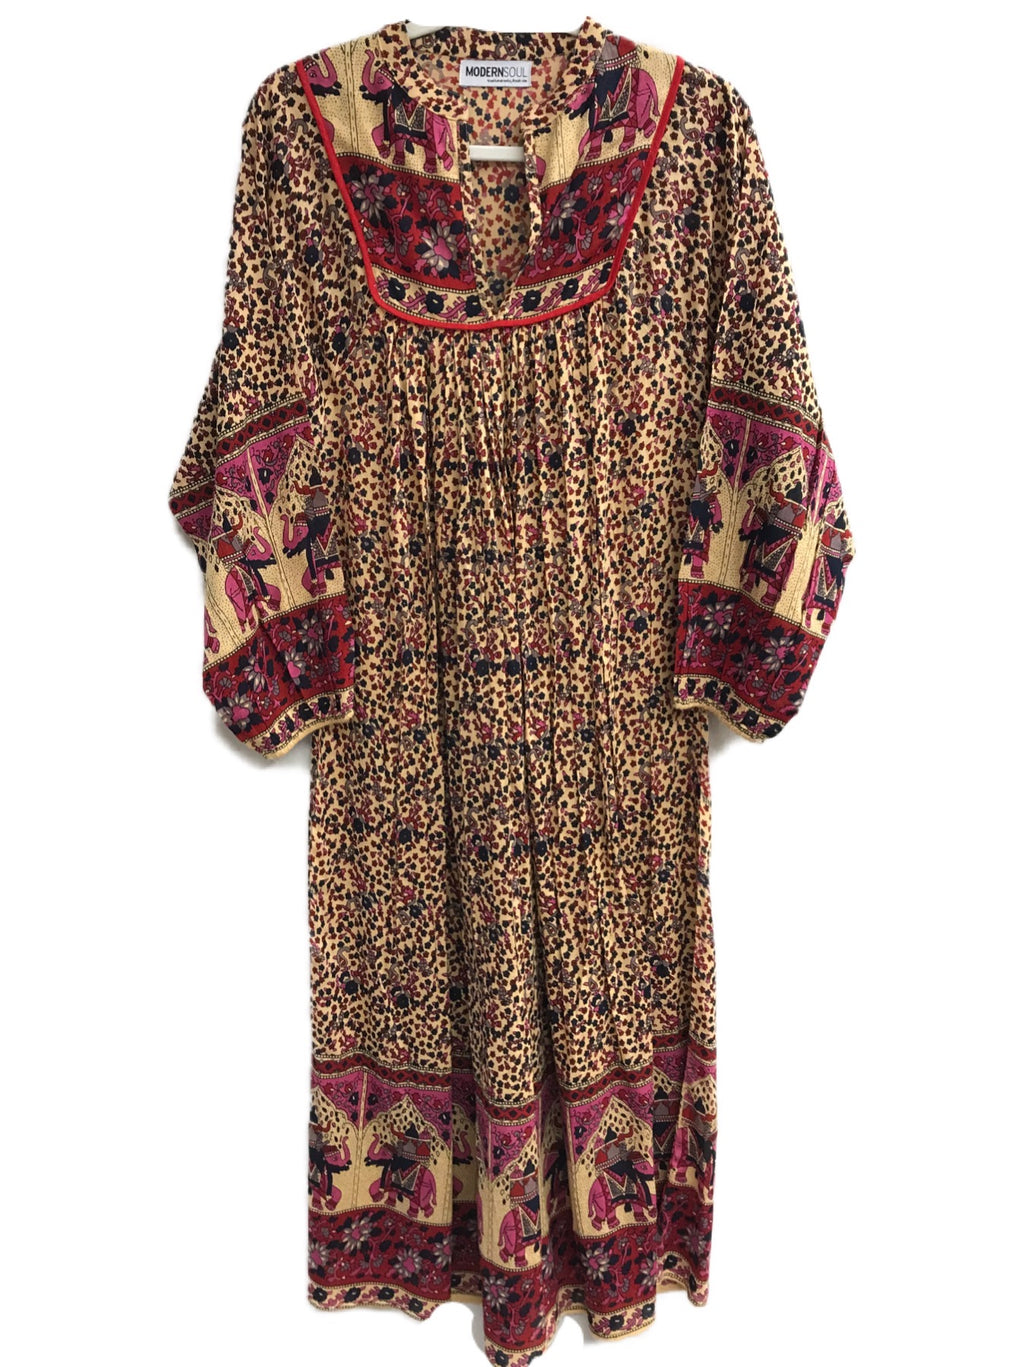 The POSEY Caftan